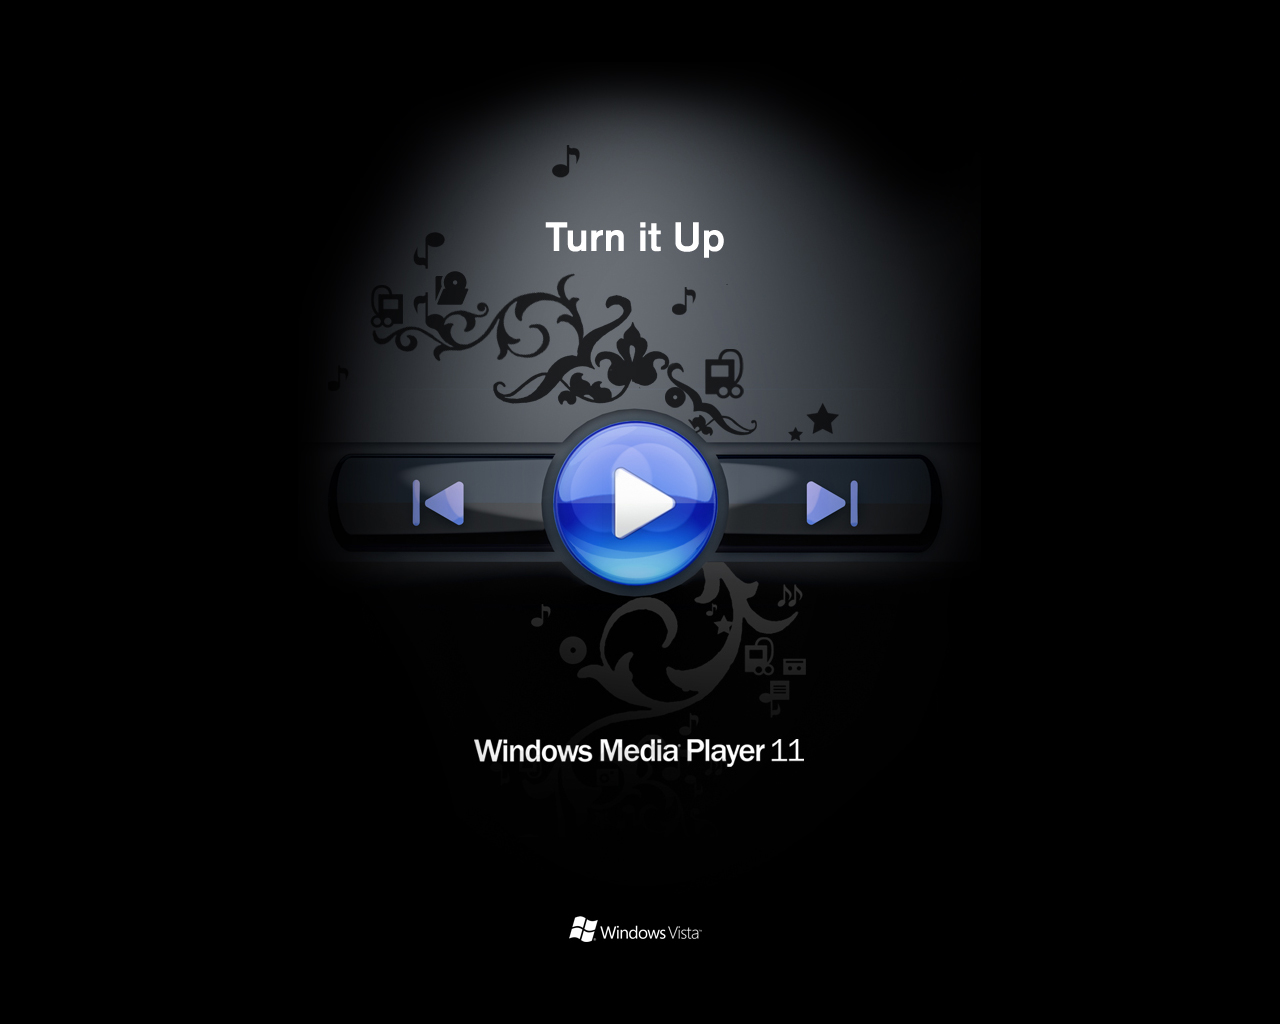 Instalar reproductor windows media 11 sin validar